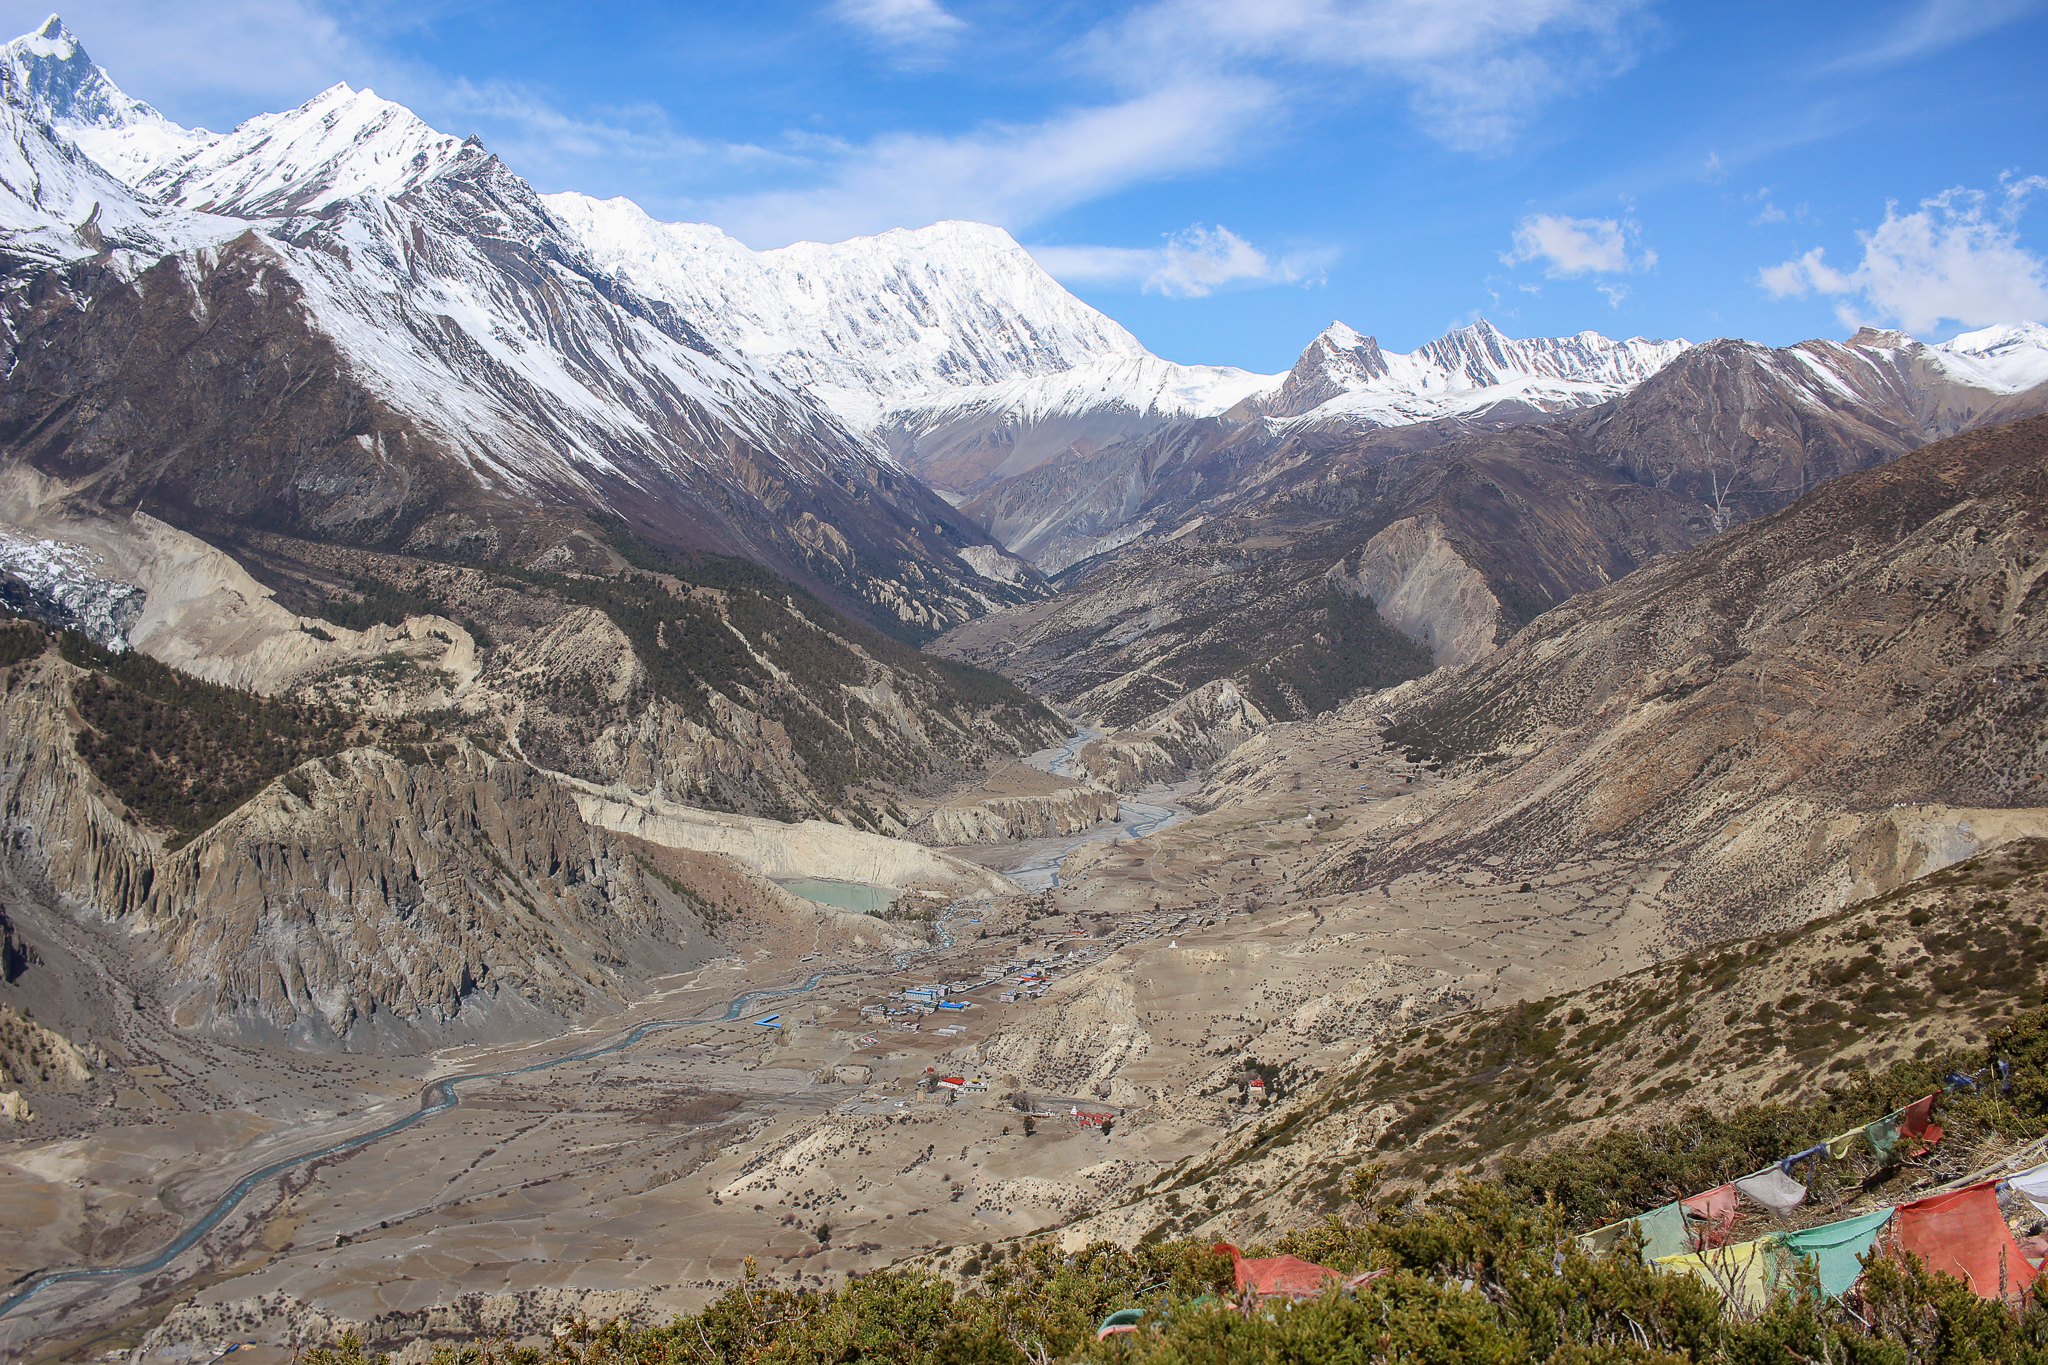 A view of the Manang Valley on a side trek up to Kilcho Tal ice lake